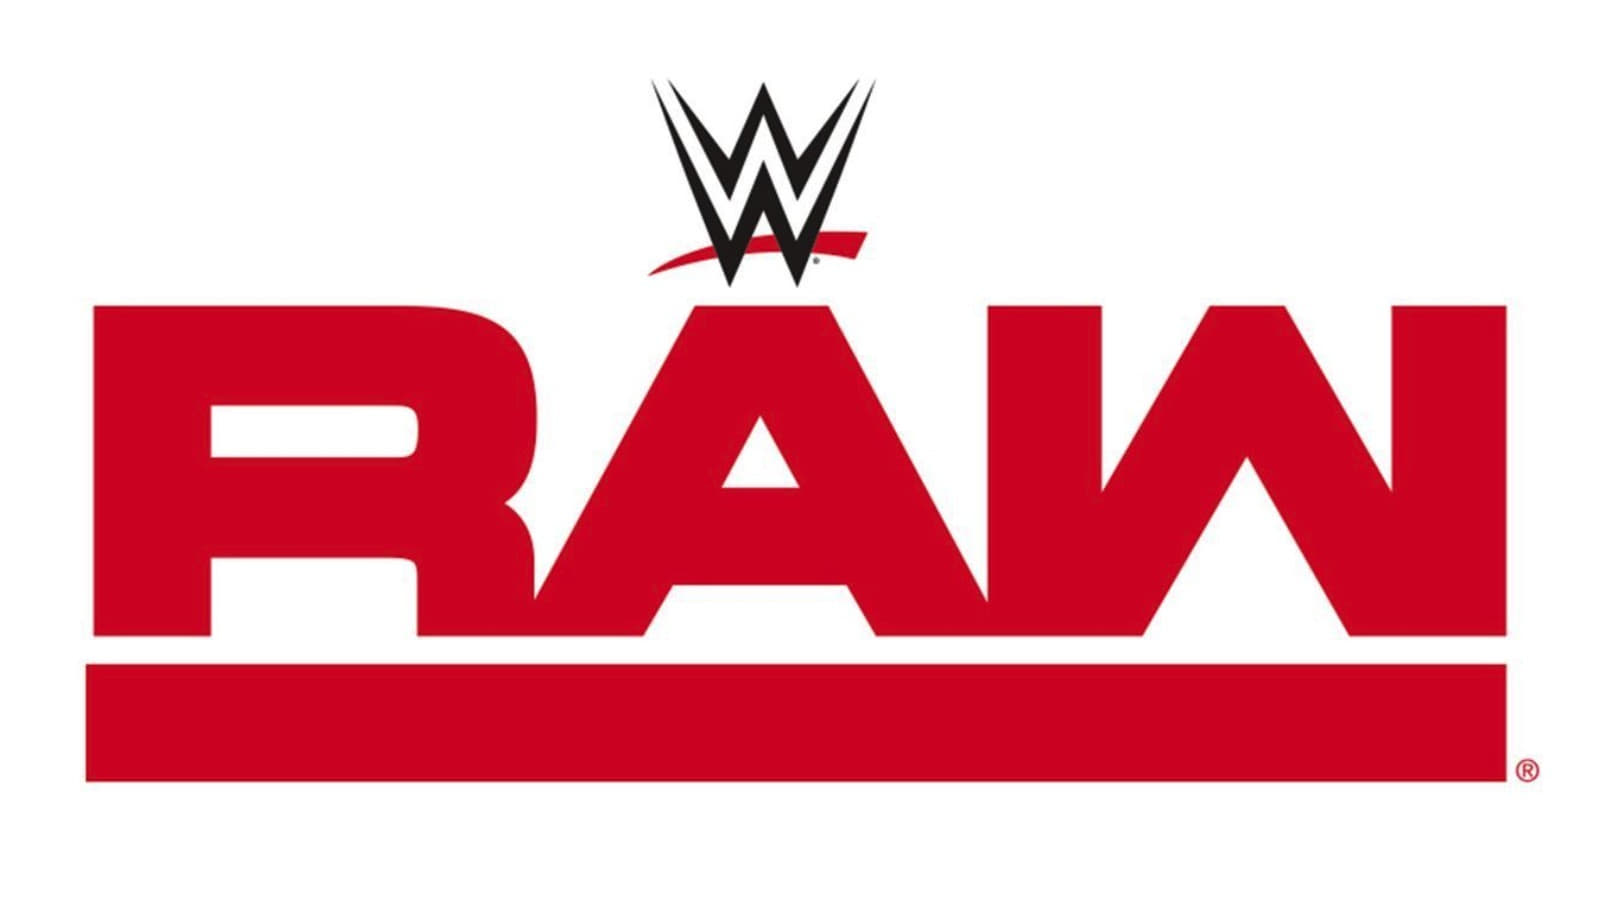 WWE Raw - Season 29 Episode 11 : March 15, 2021 (1970)